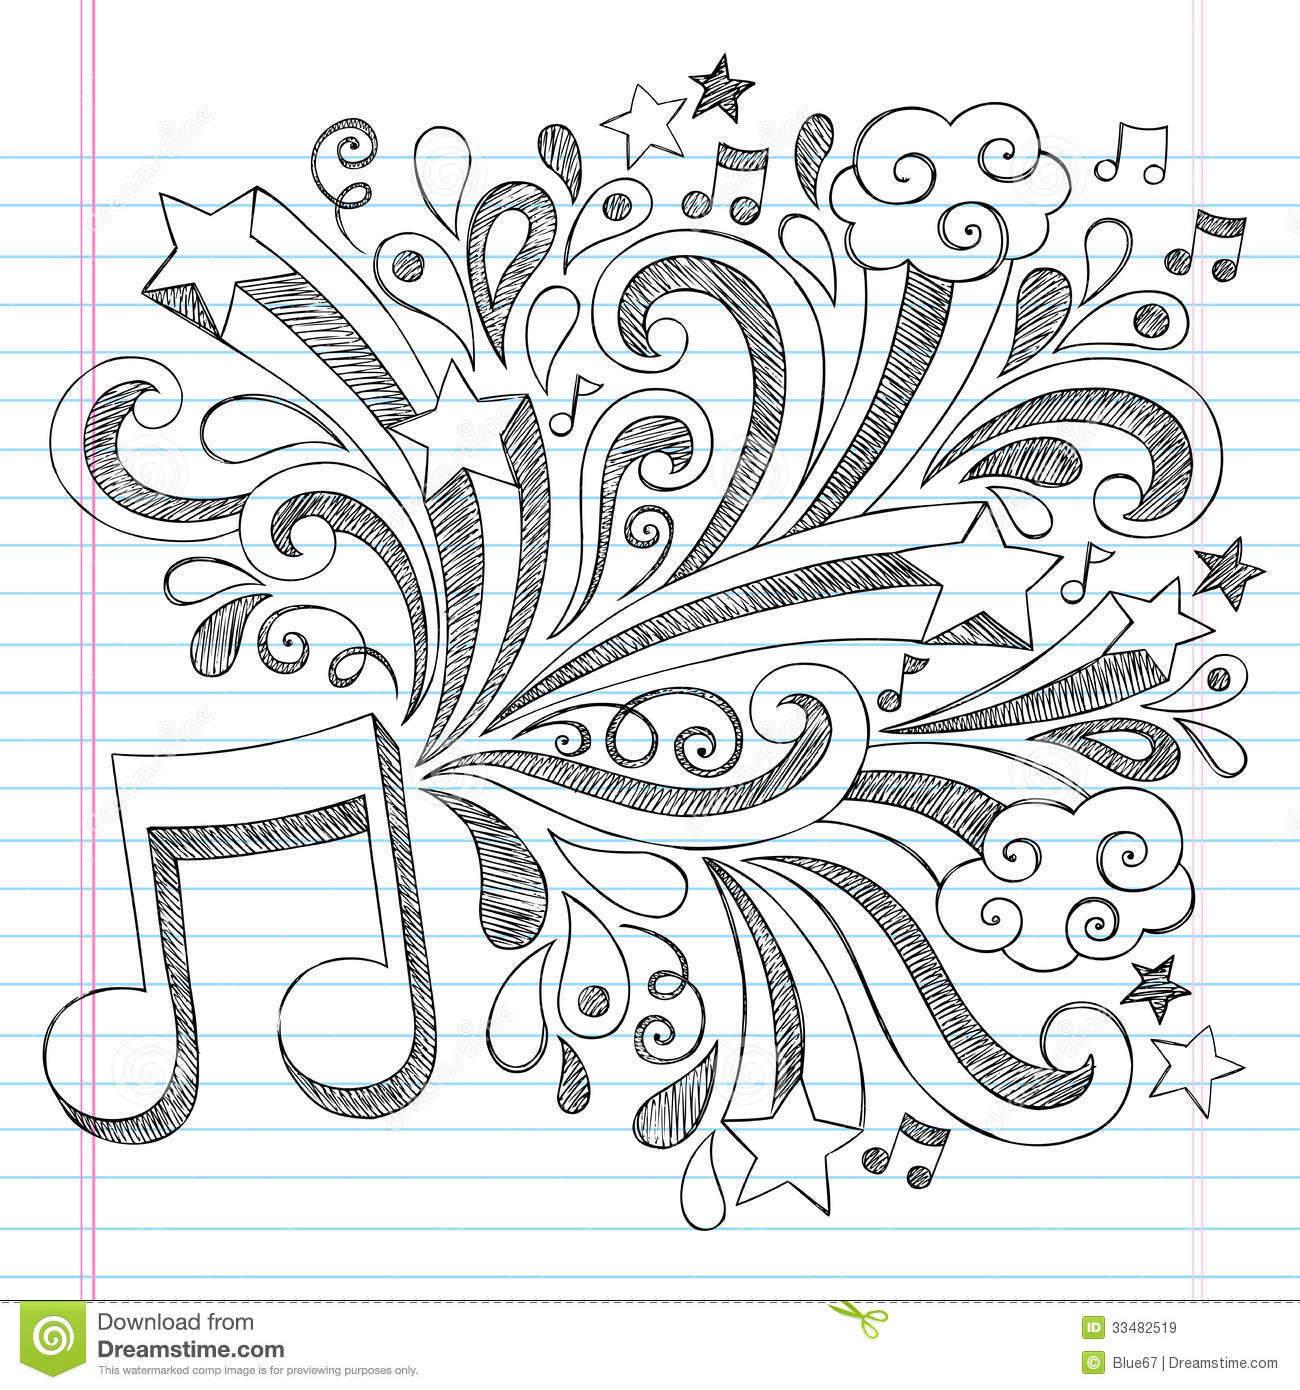 Music Note Sketchy Notebook Doodle Vector Illustra Royalty